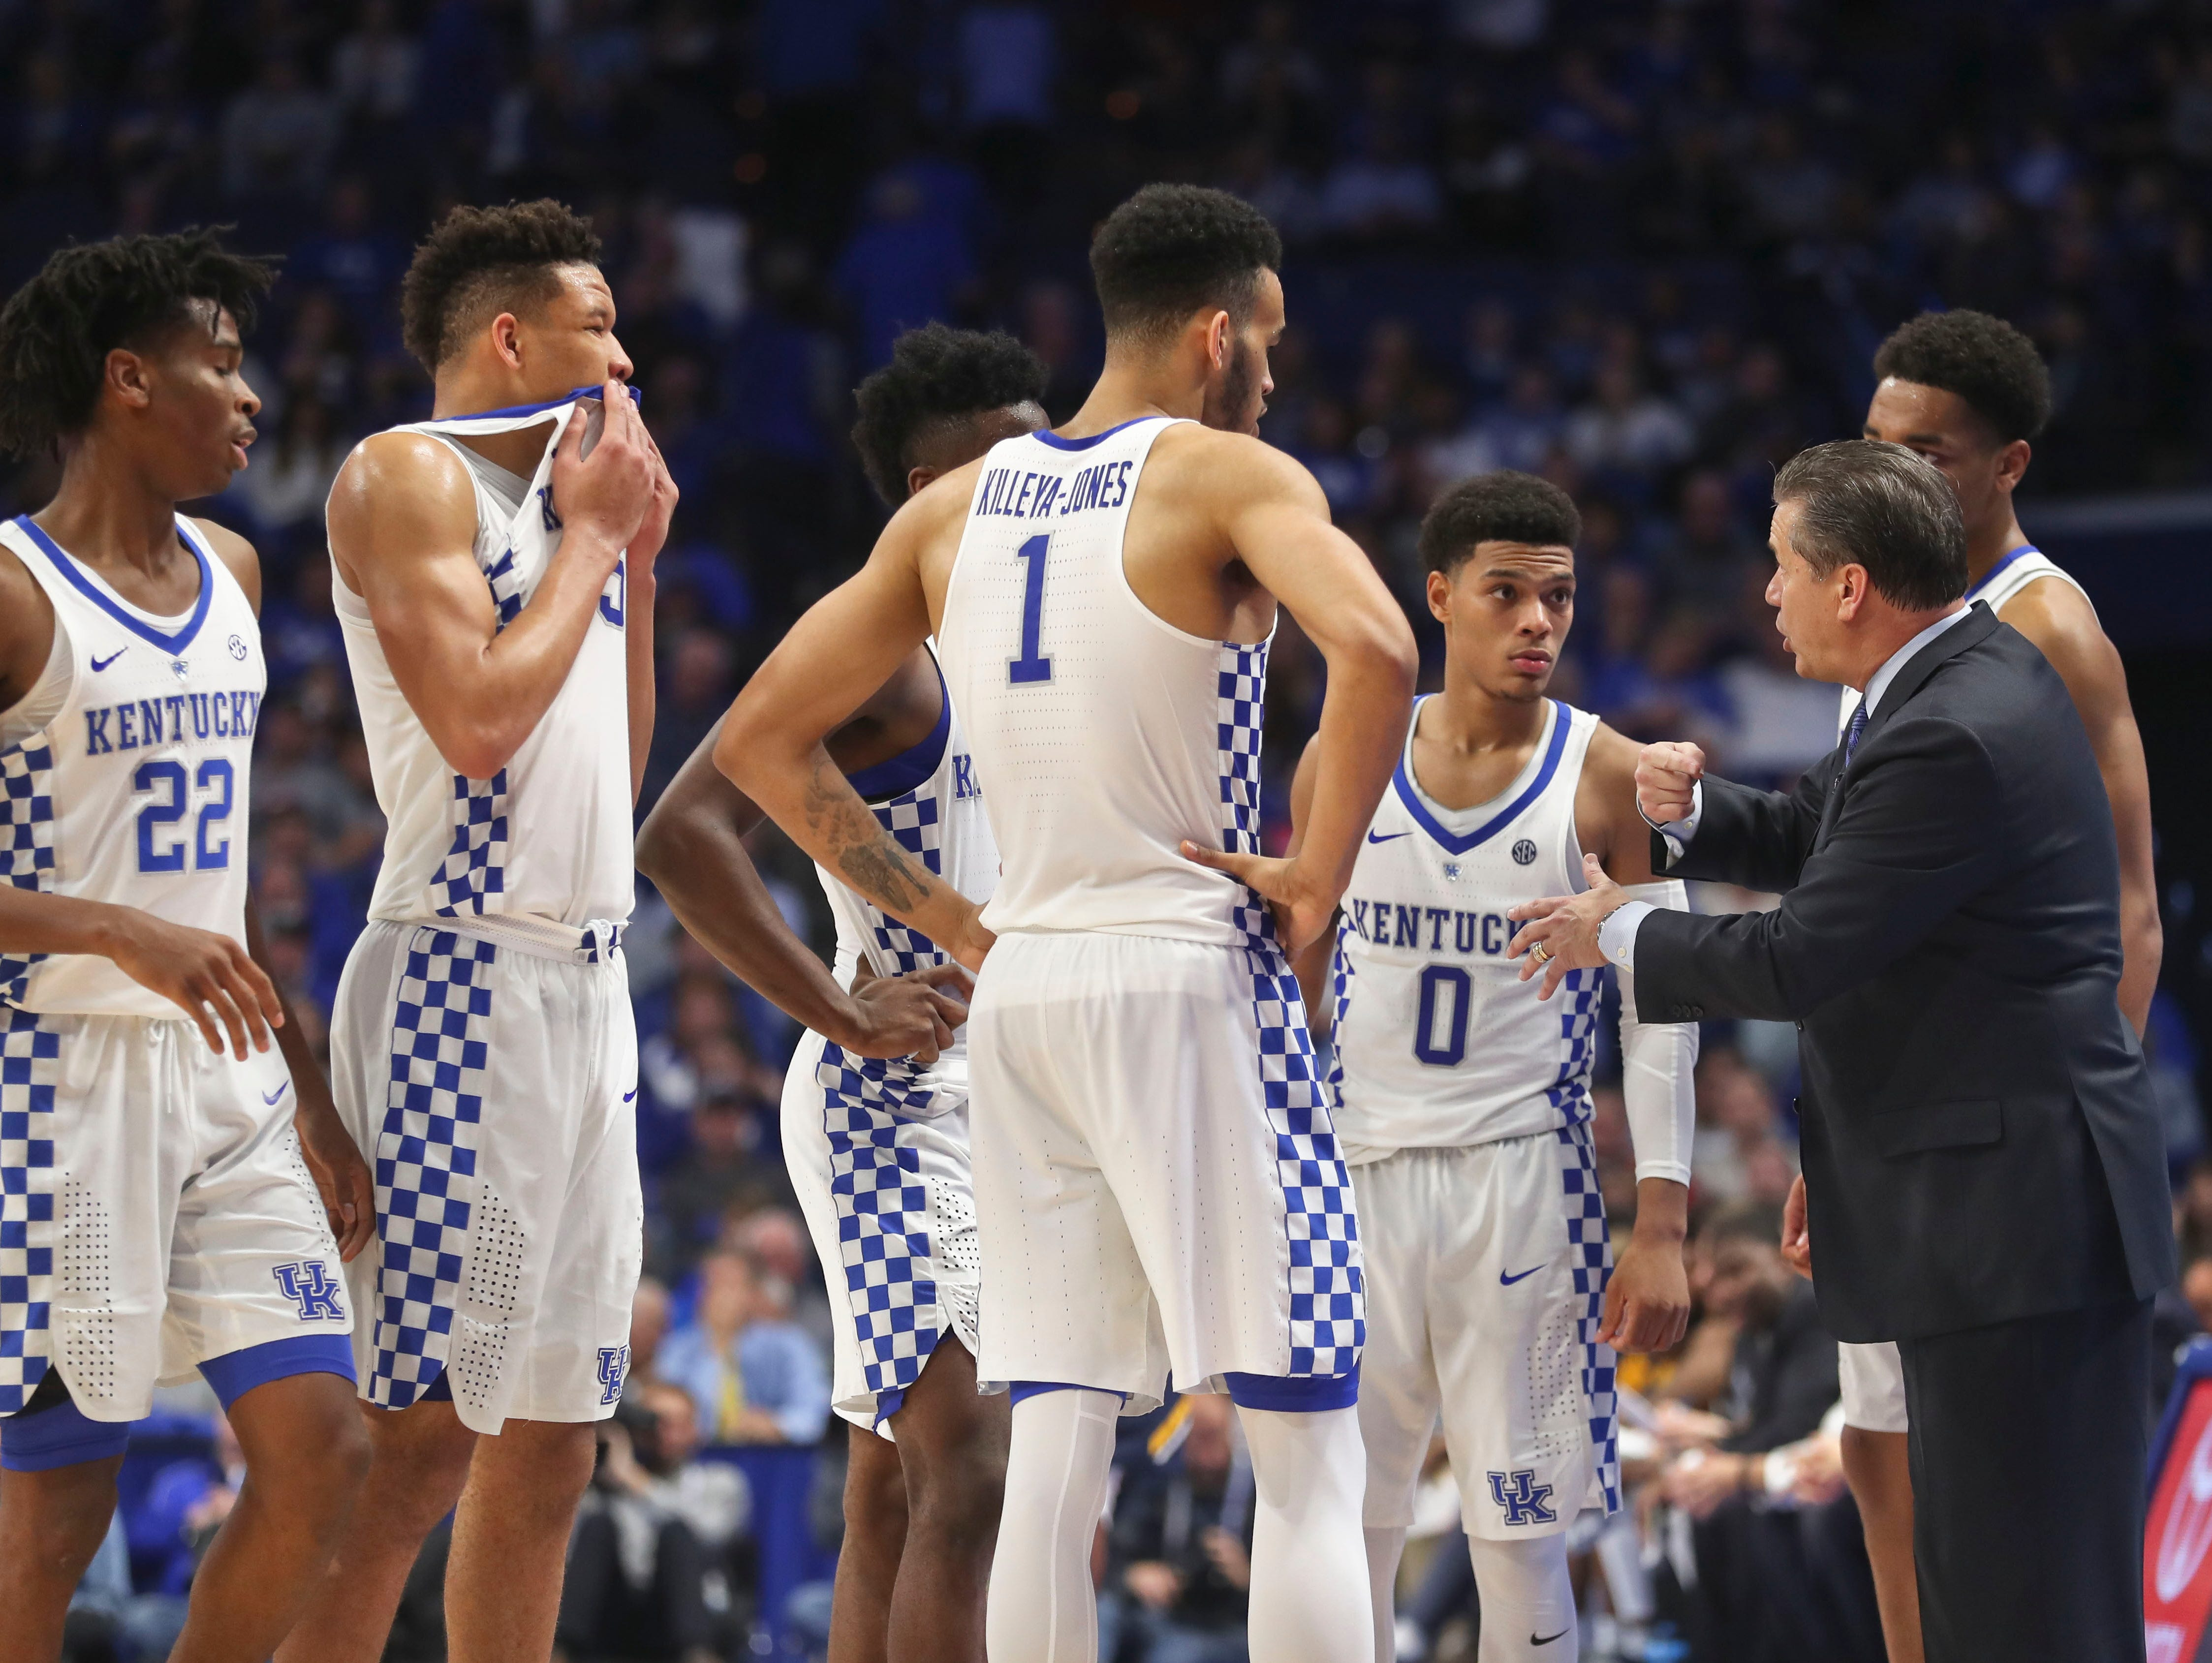 Kentucky Basketball Our First Look At The New Wildcats In: John Calipari Explains Importance Of UK Basketball Team's